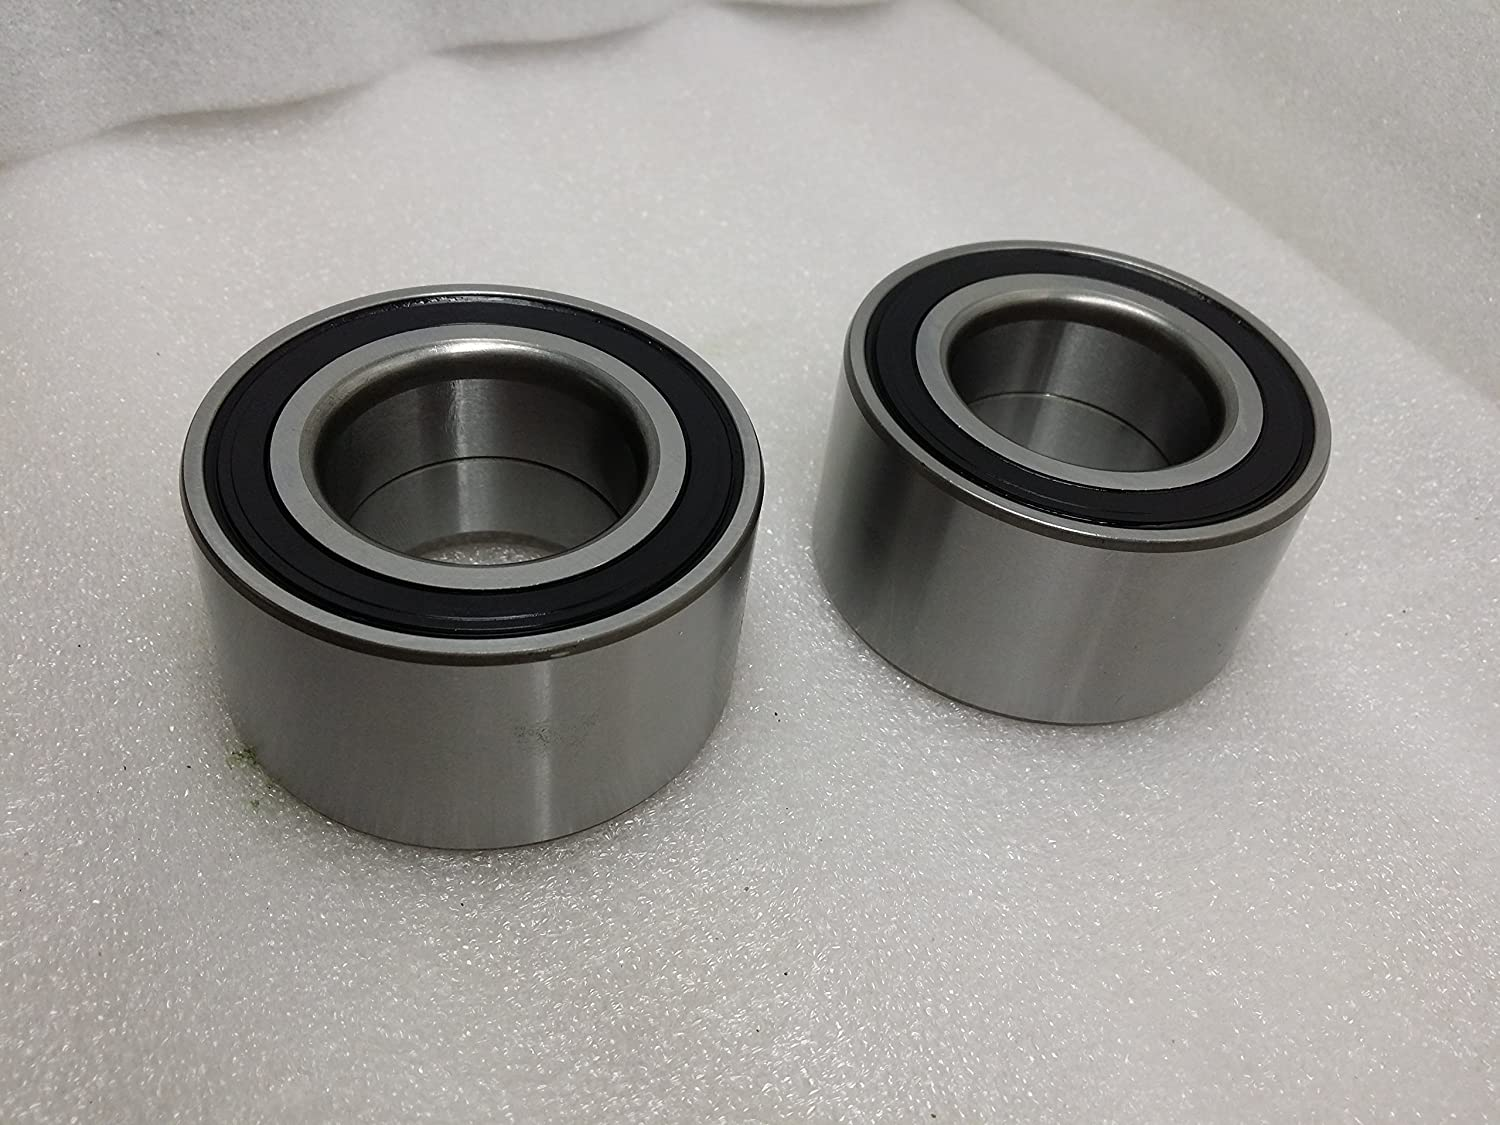 Replace Polaris OEM 3514635 Most Polaris Sportsman Models Bonbo Rear Wheel Bearings 3514635 for Polaris RZR 570 RZR S 800 10-14 3585502 RZR 800 2Pcs, 40x74x40MM